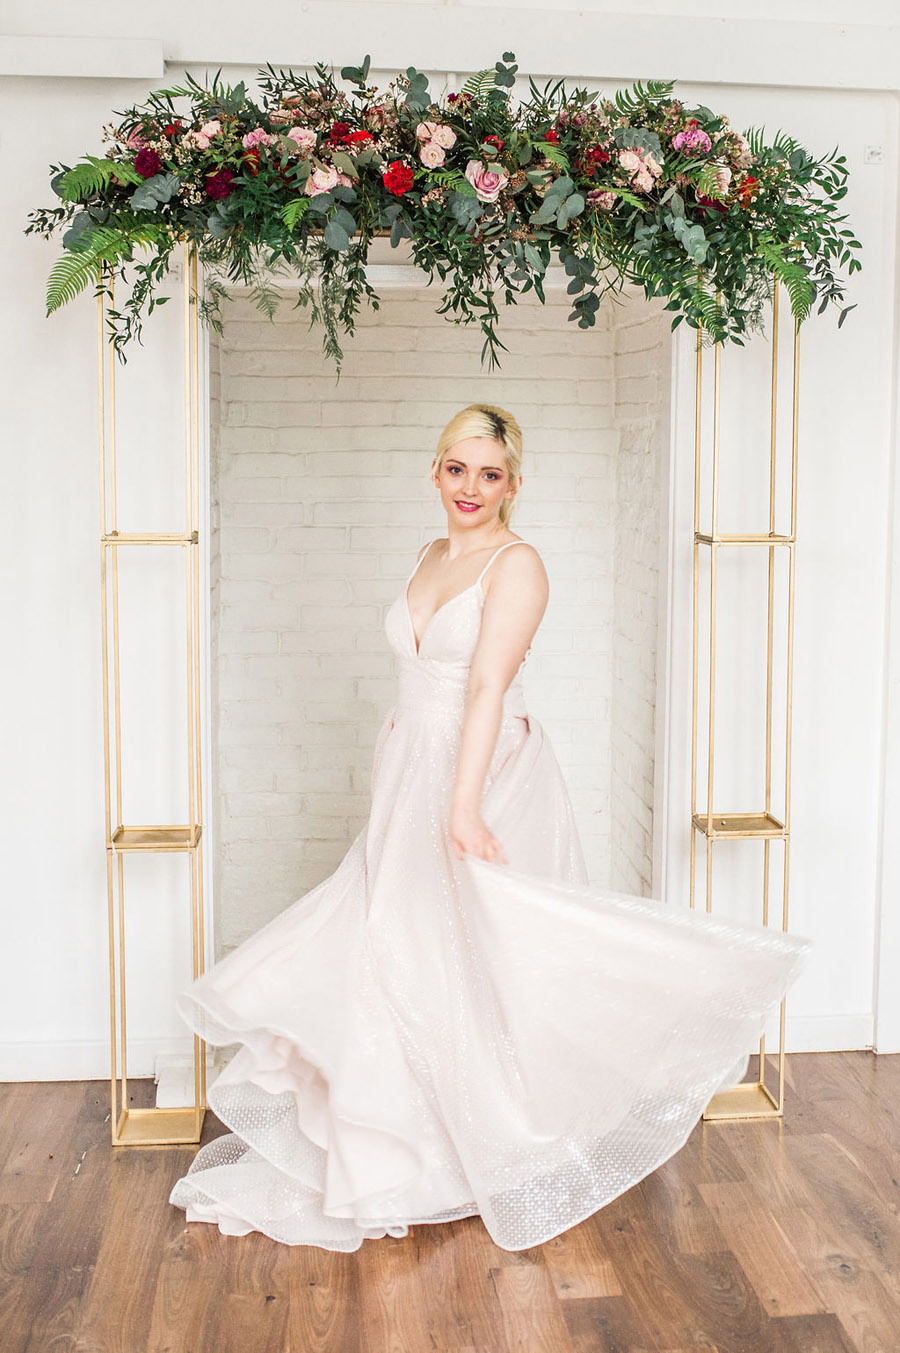 Modern luxe wedding style ideas with images by Laura Jane Photography (16)